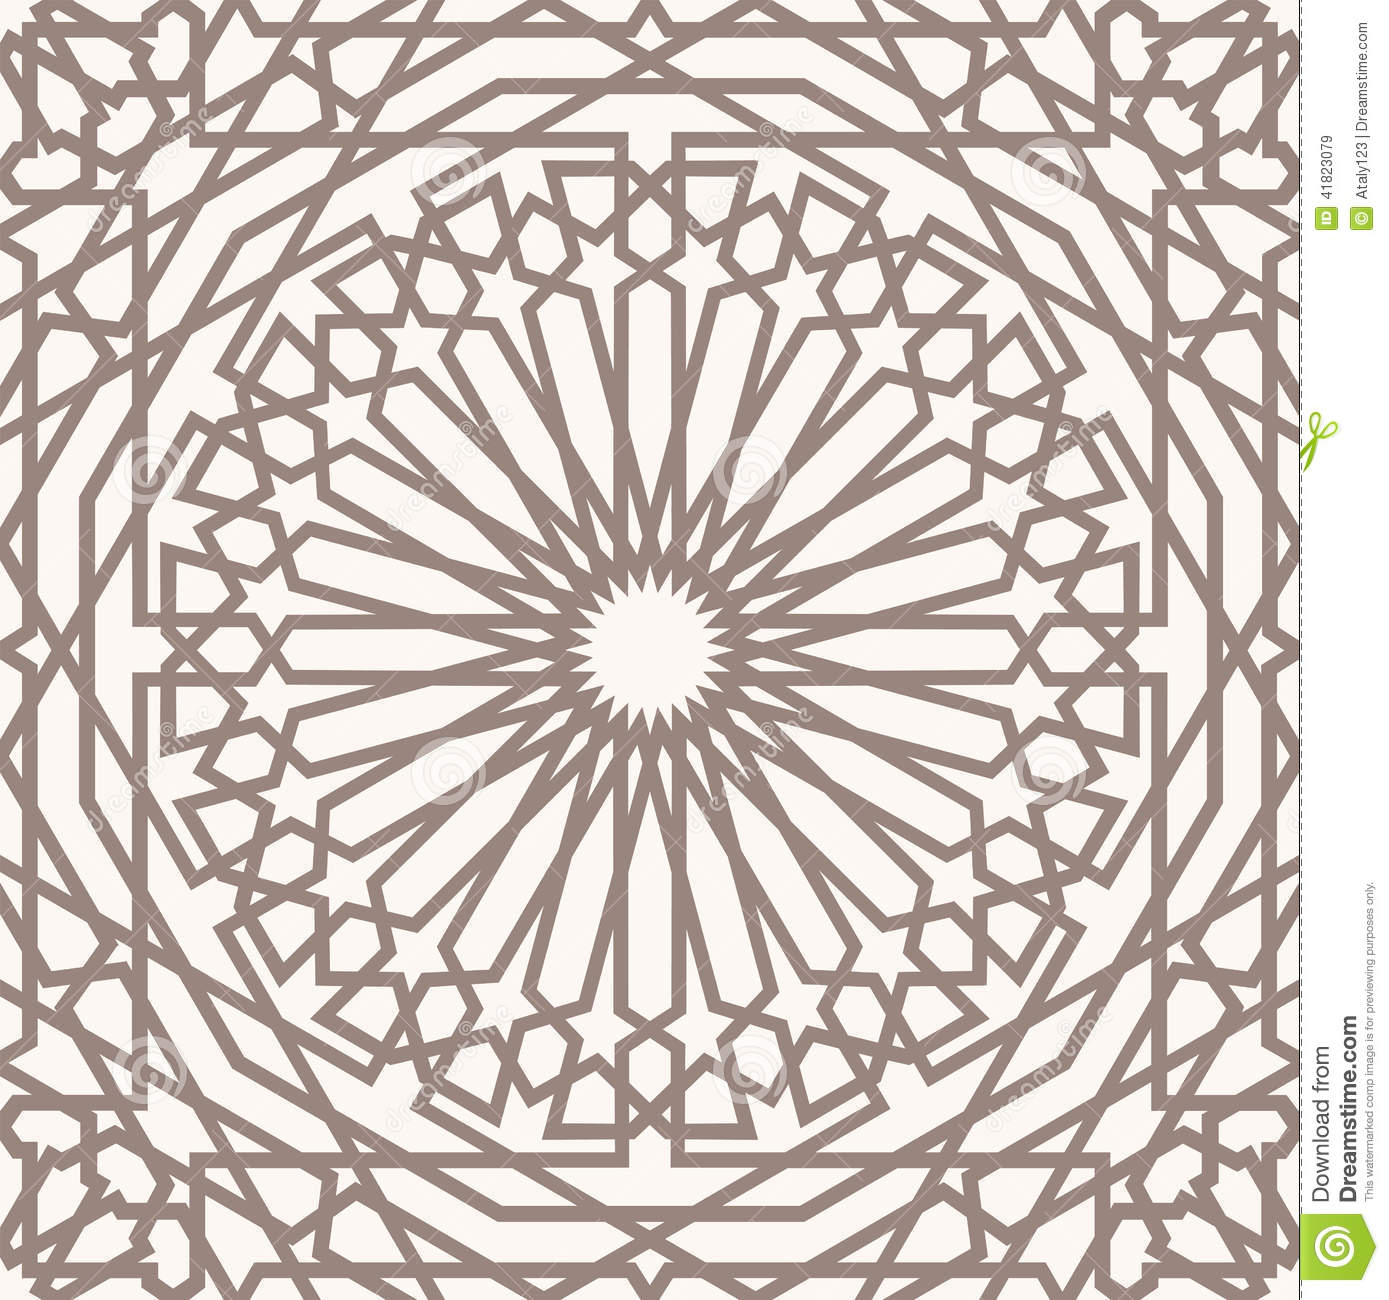 â œvegetal pattern in islamic artâ 26,090 islamic window stock photos, vectors, and illustrations are iran â september 18, 2014 vector islamic windows art pattern in eastern style.